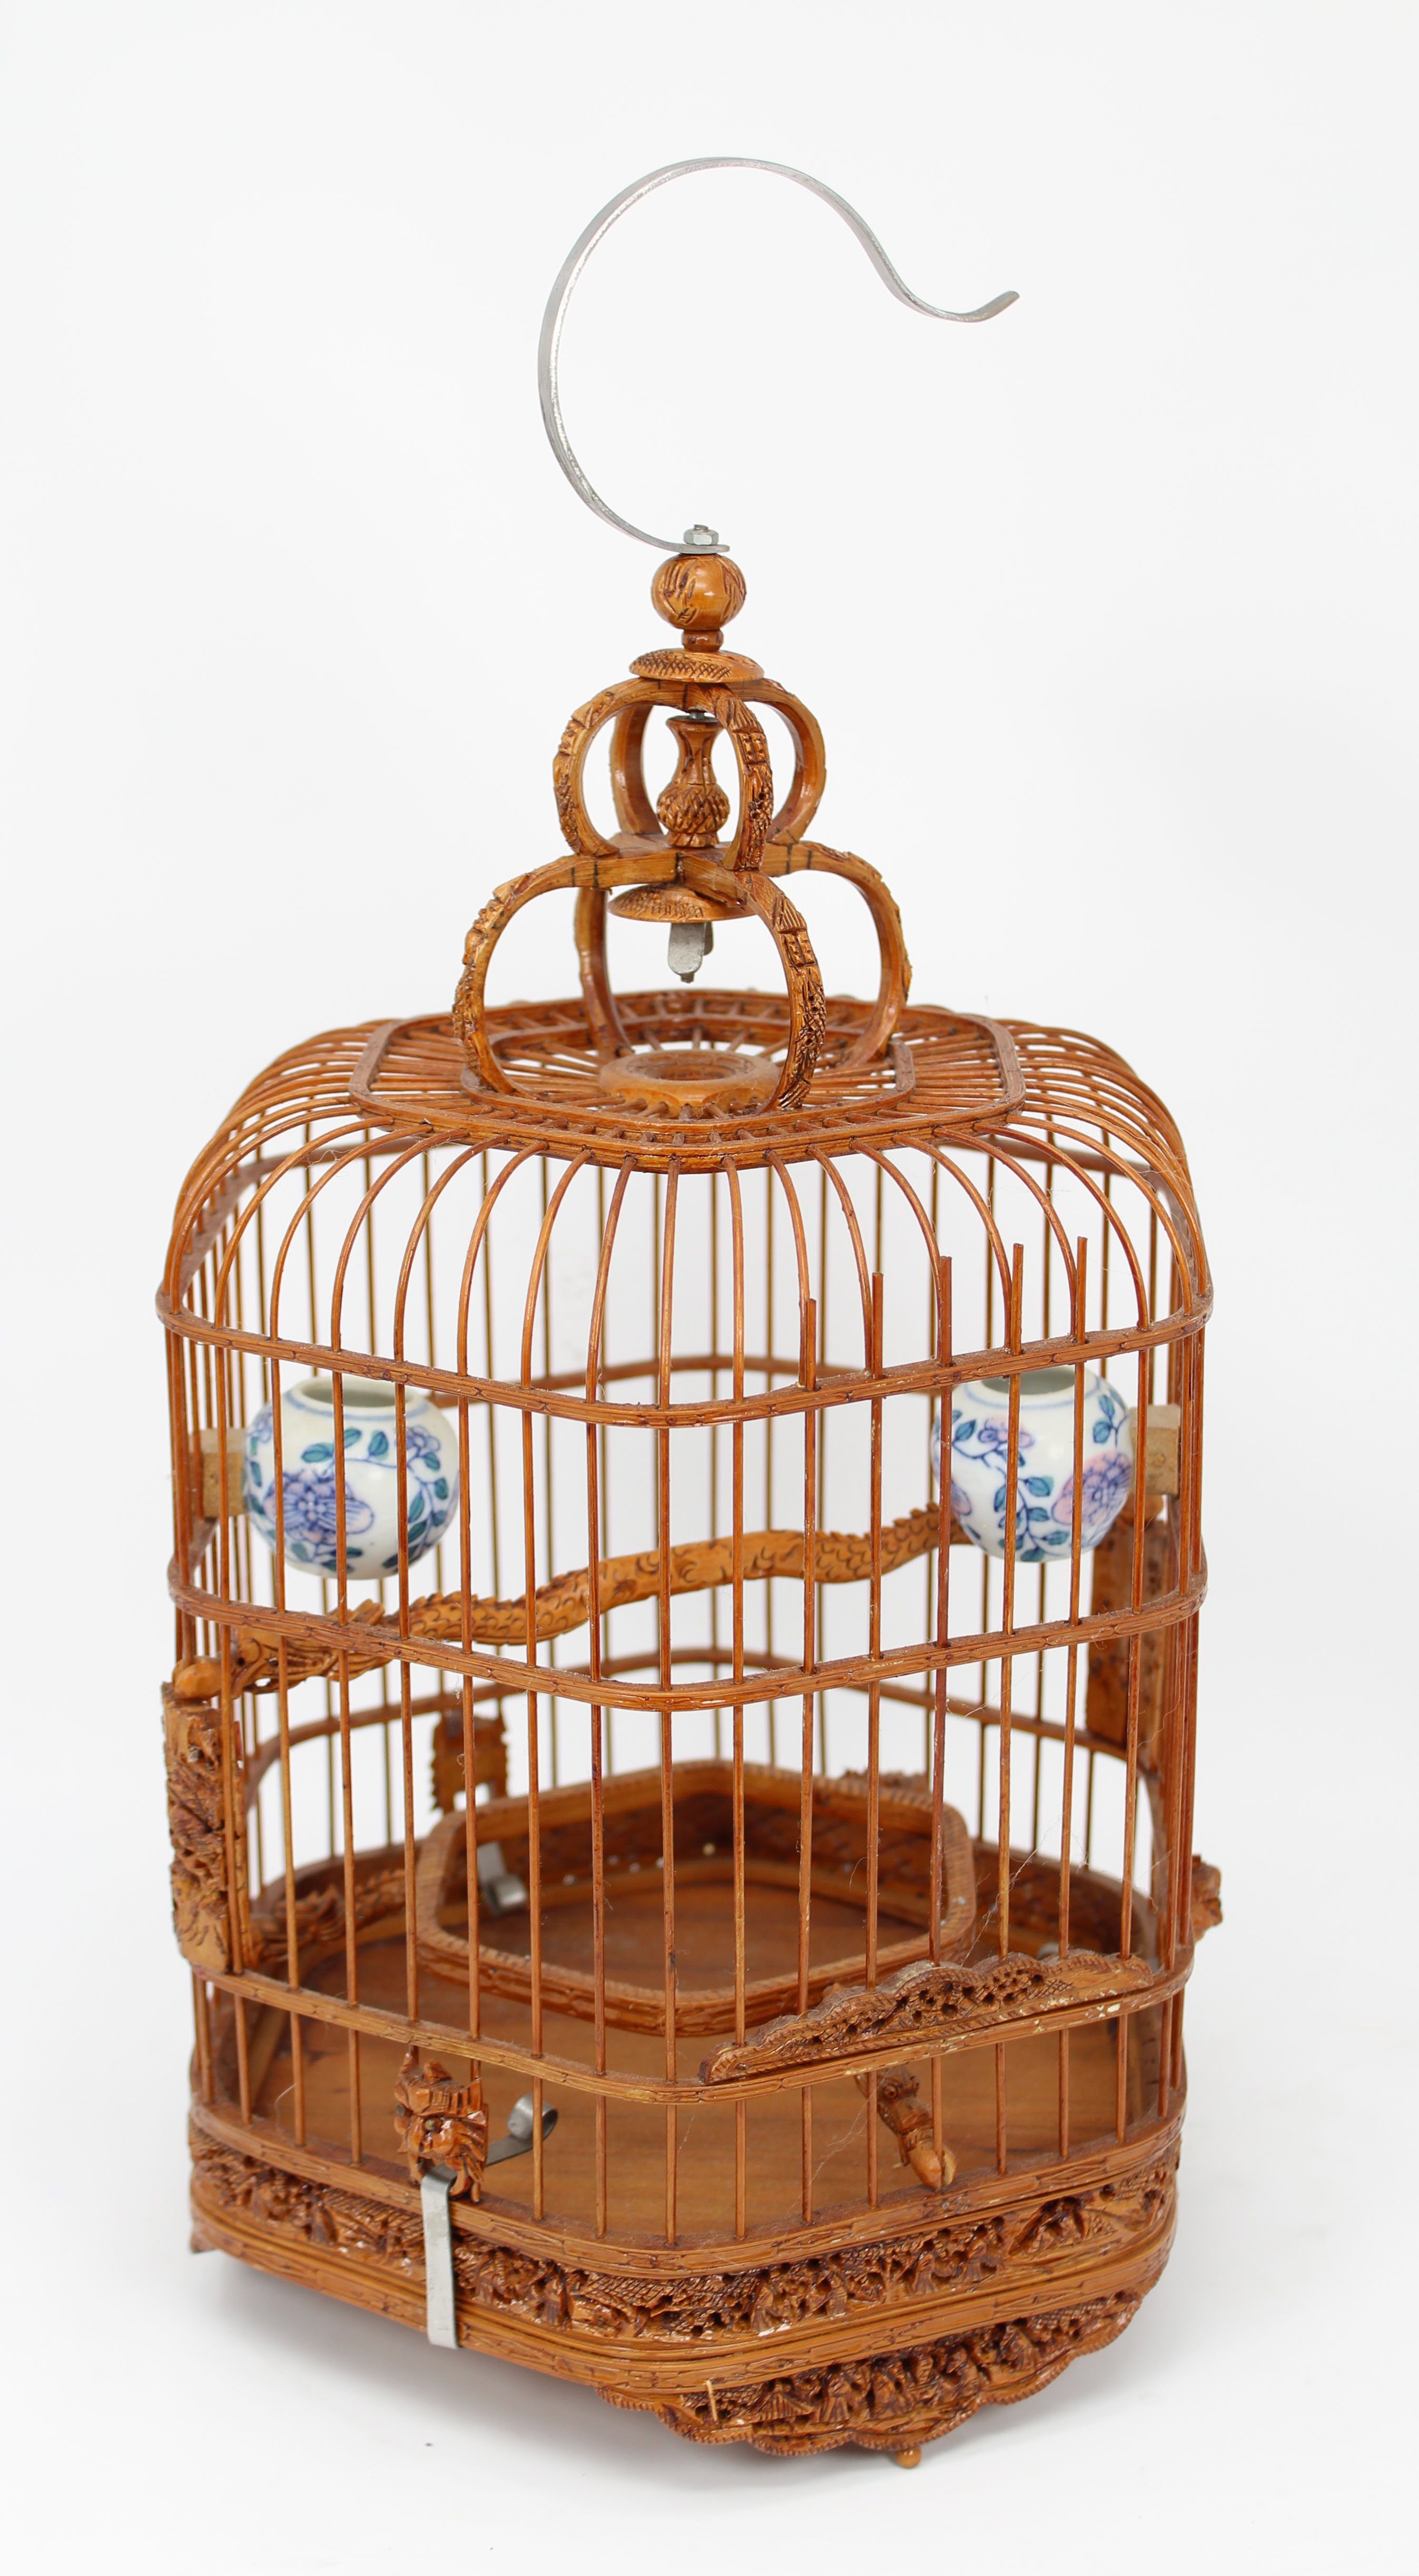 Lot 246 - Chinese, Vintage Carved Bamboo Bird Cage